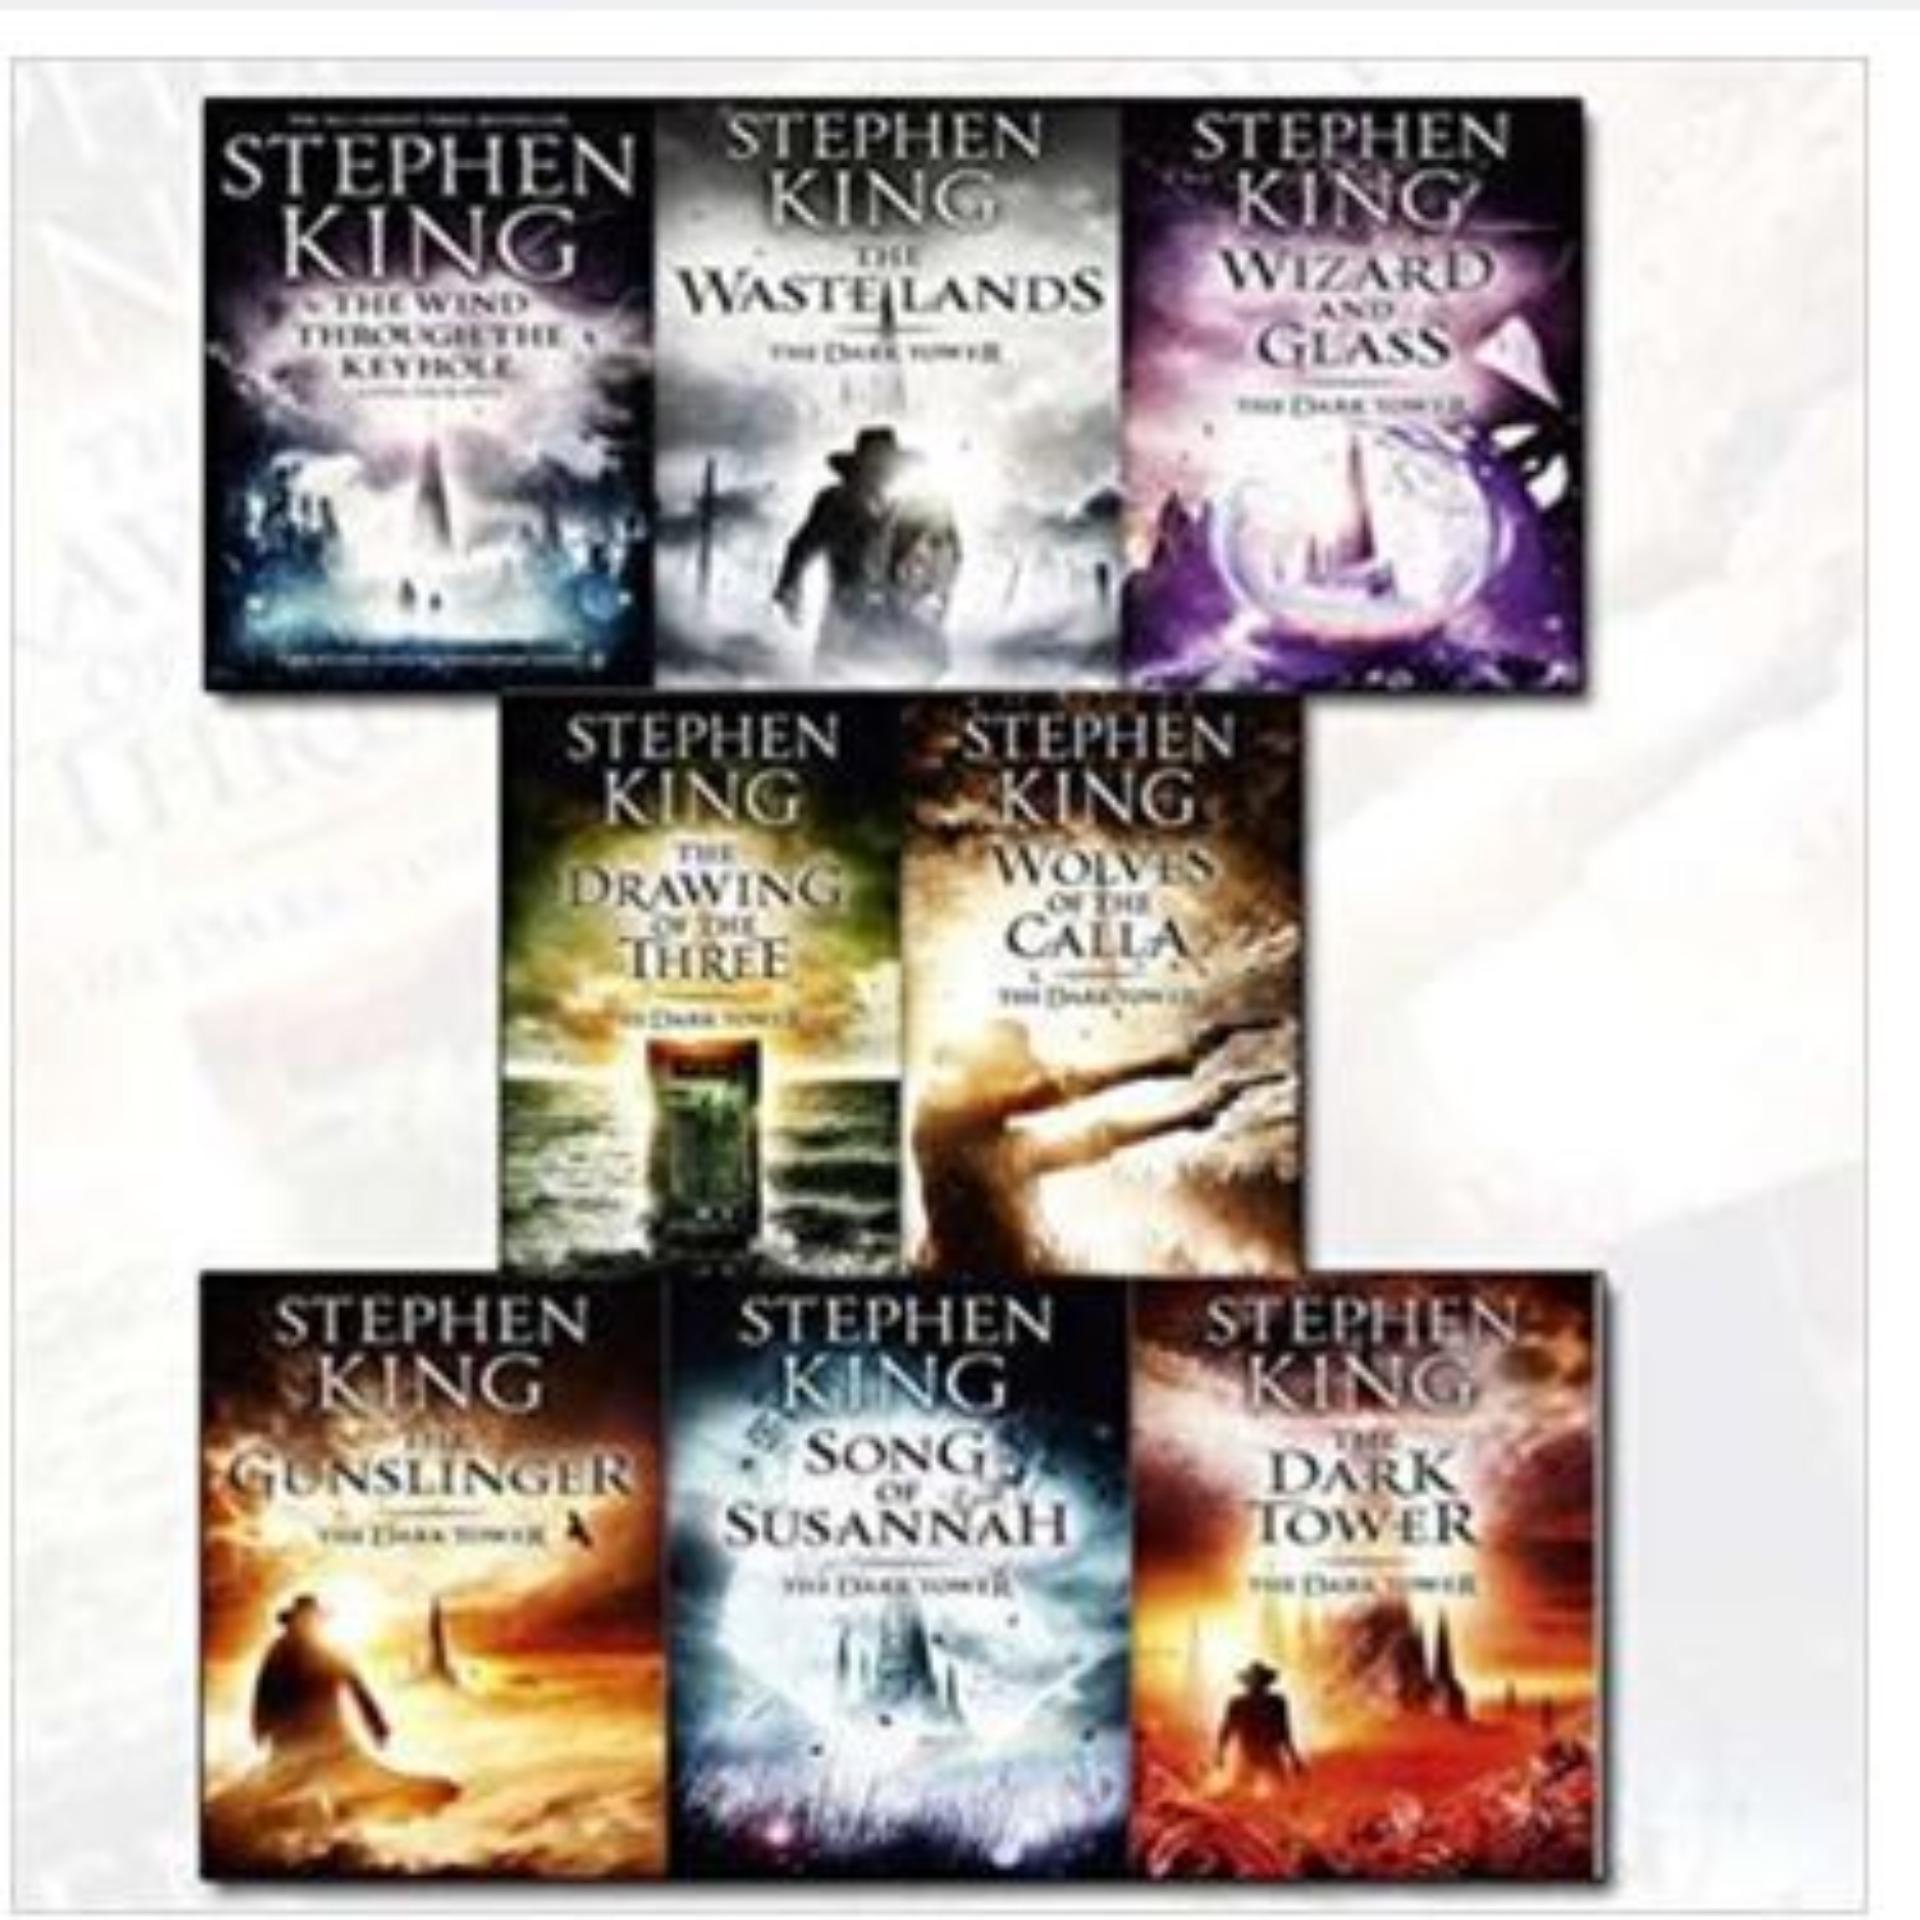 eBook Stephen King Dark Tower Collection 8 Books Set (1 to 8 Books Set)